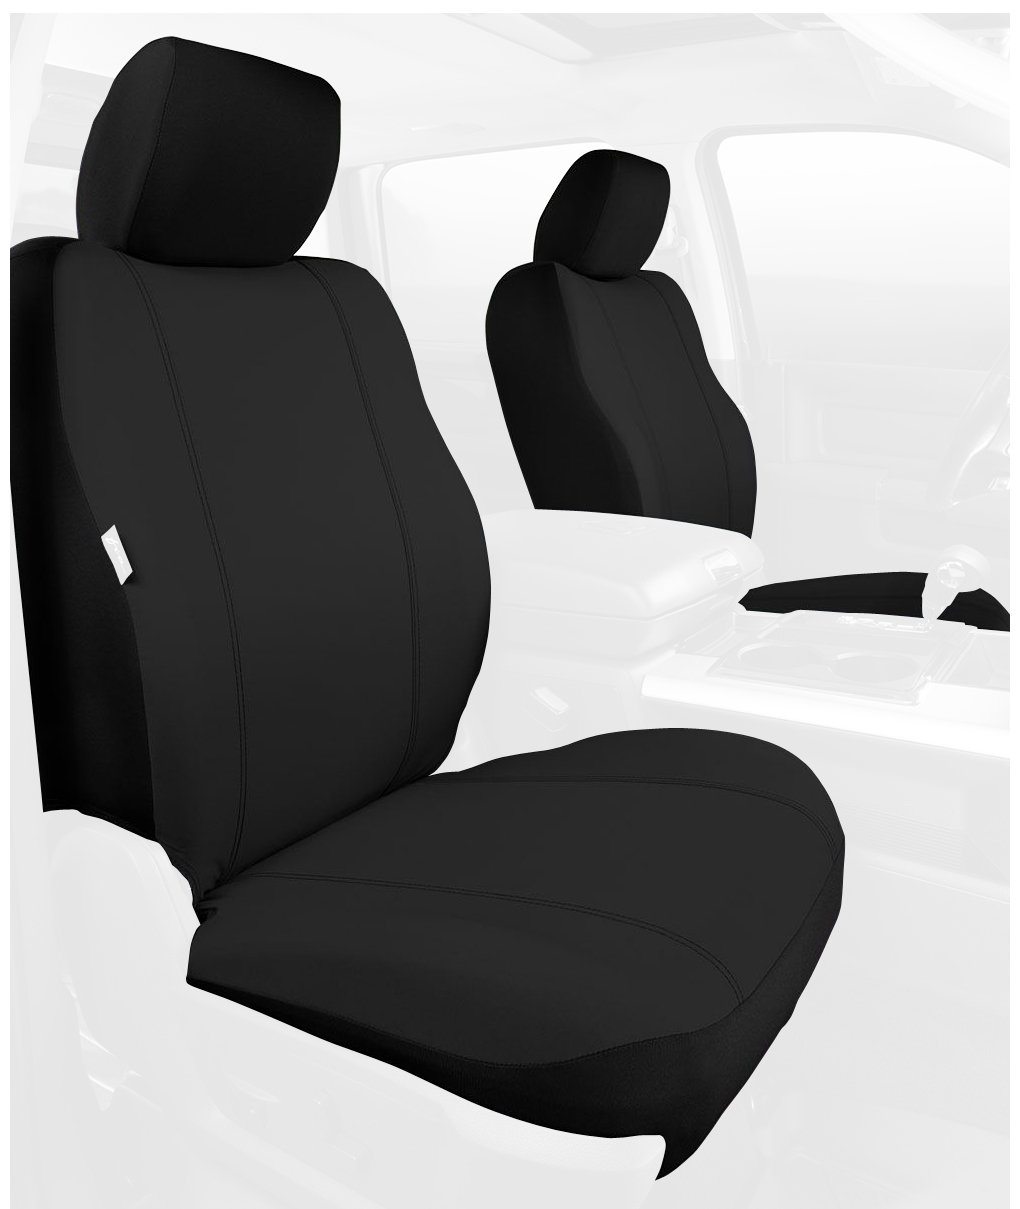 Poly-Cotton, Black Fia SP88-24 BLACK Custom Fit Front Seat Cover Bucket Seats